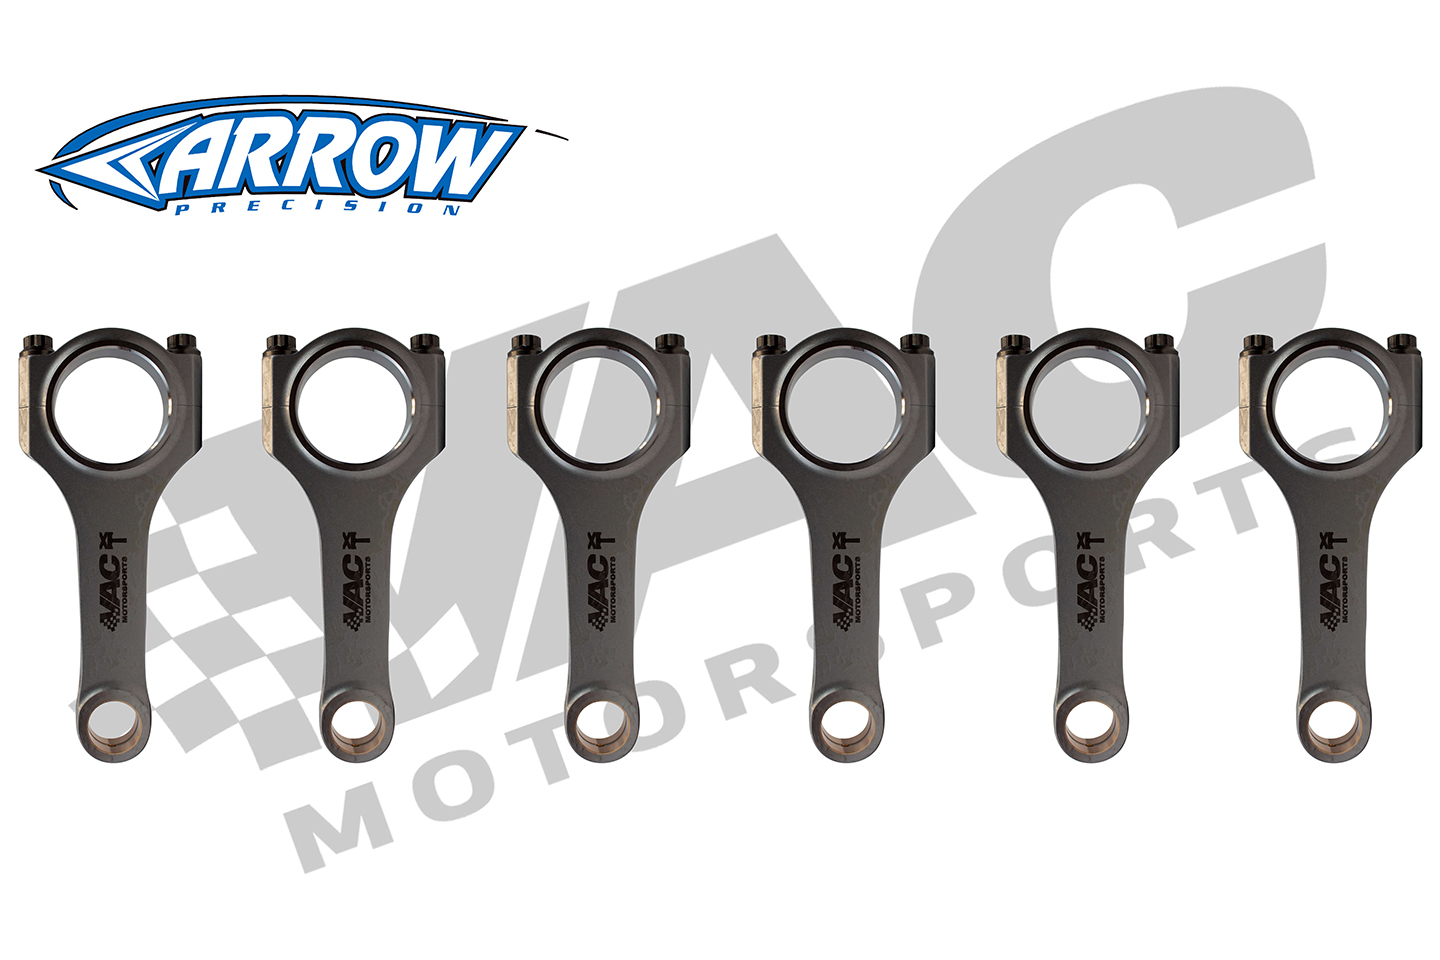 VAC PRO-XTREME Forged Connecting Rods by Arrow, BMW S54 MAIN